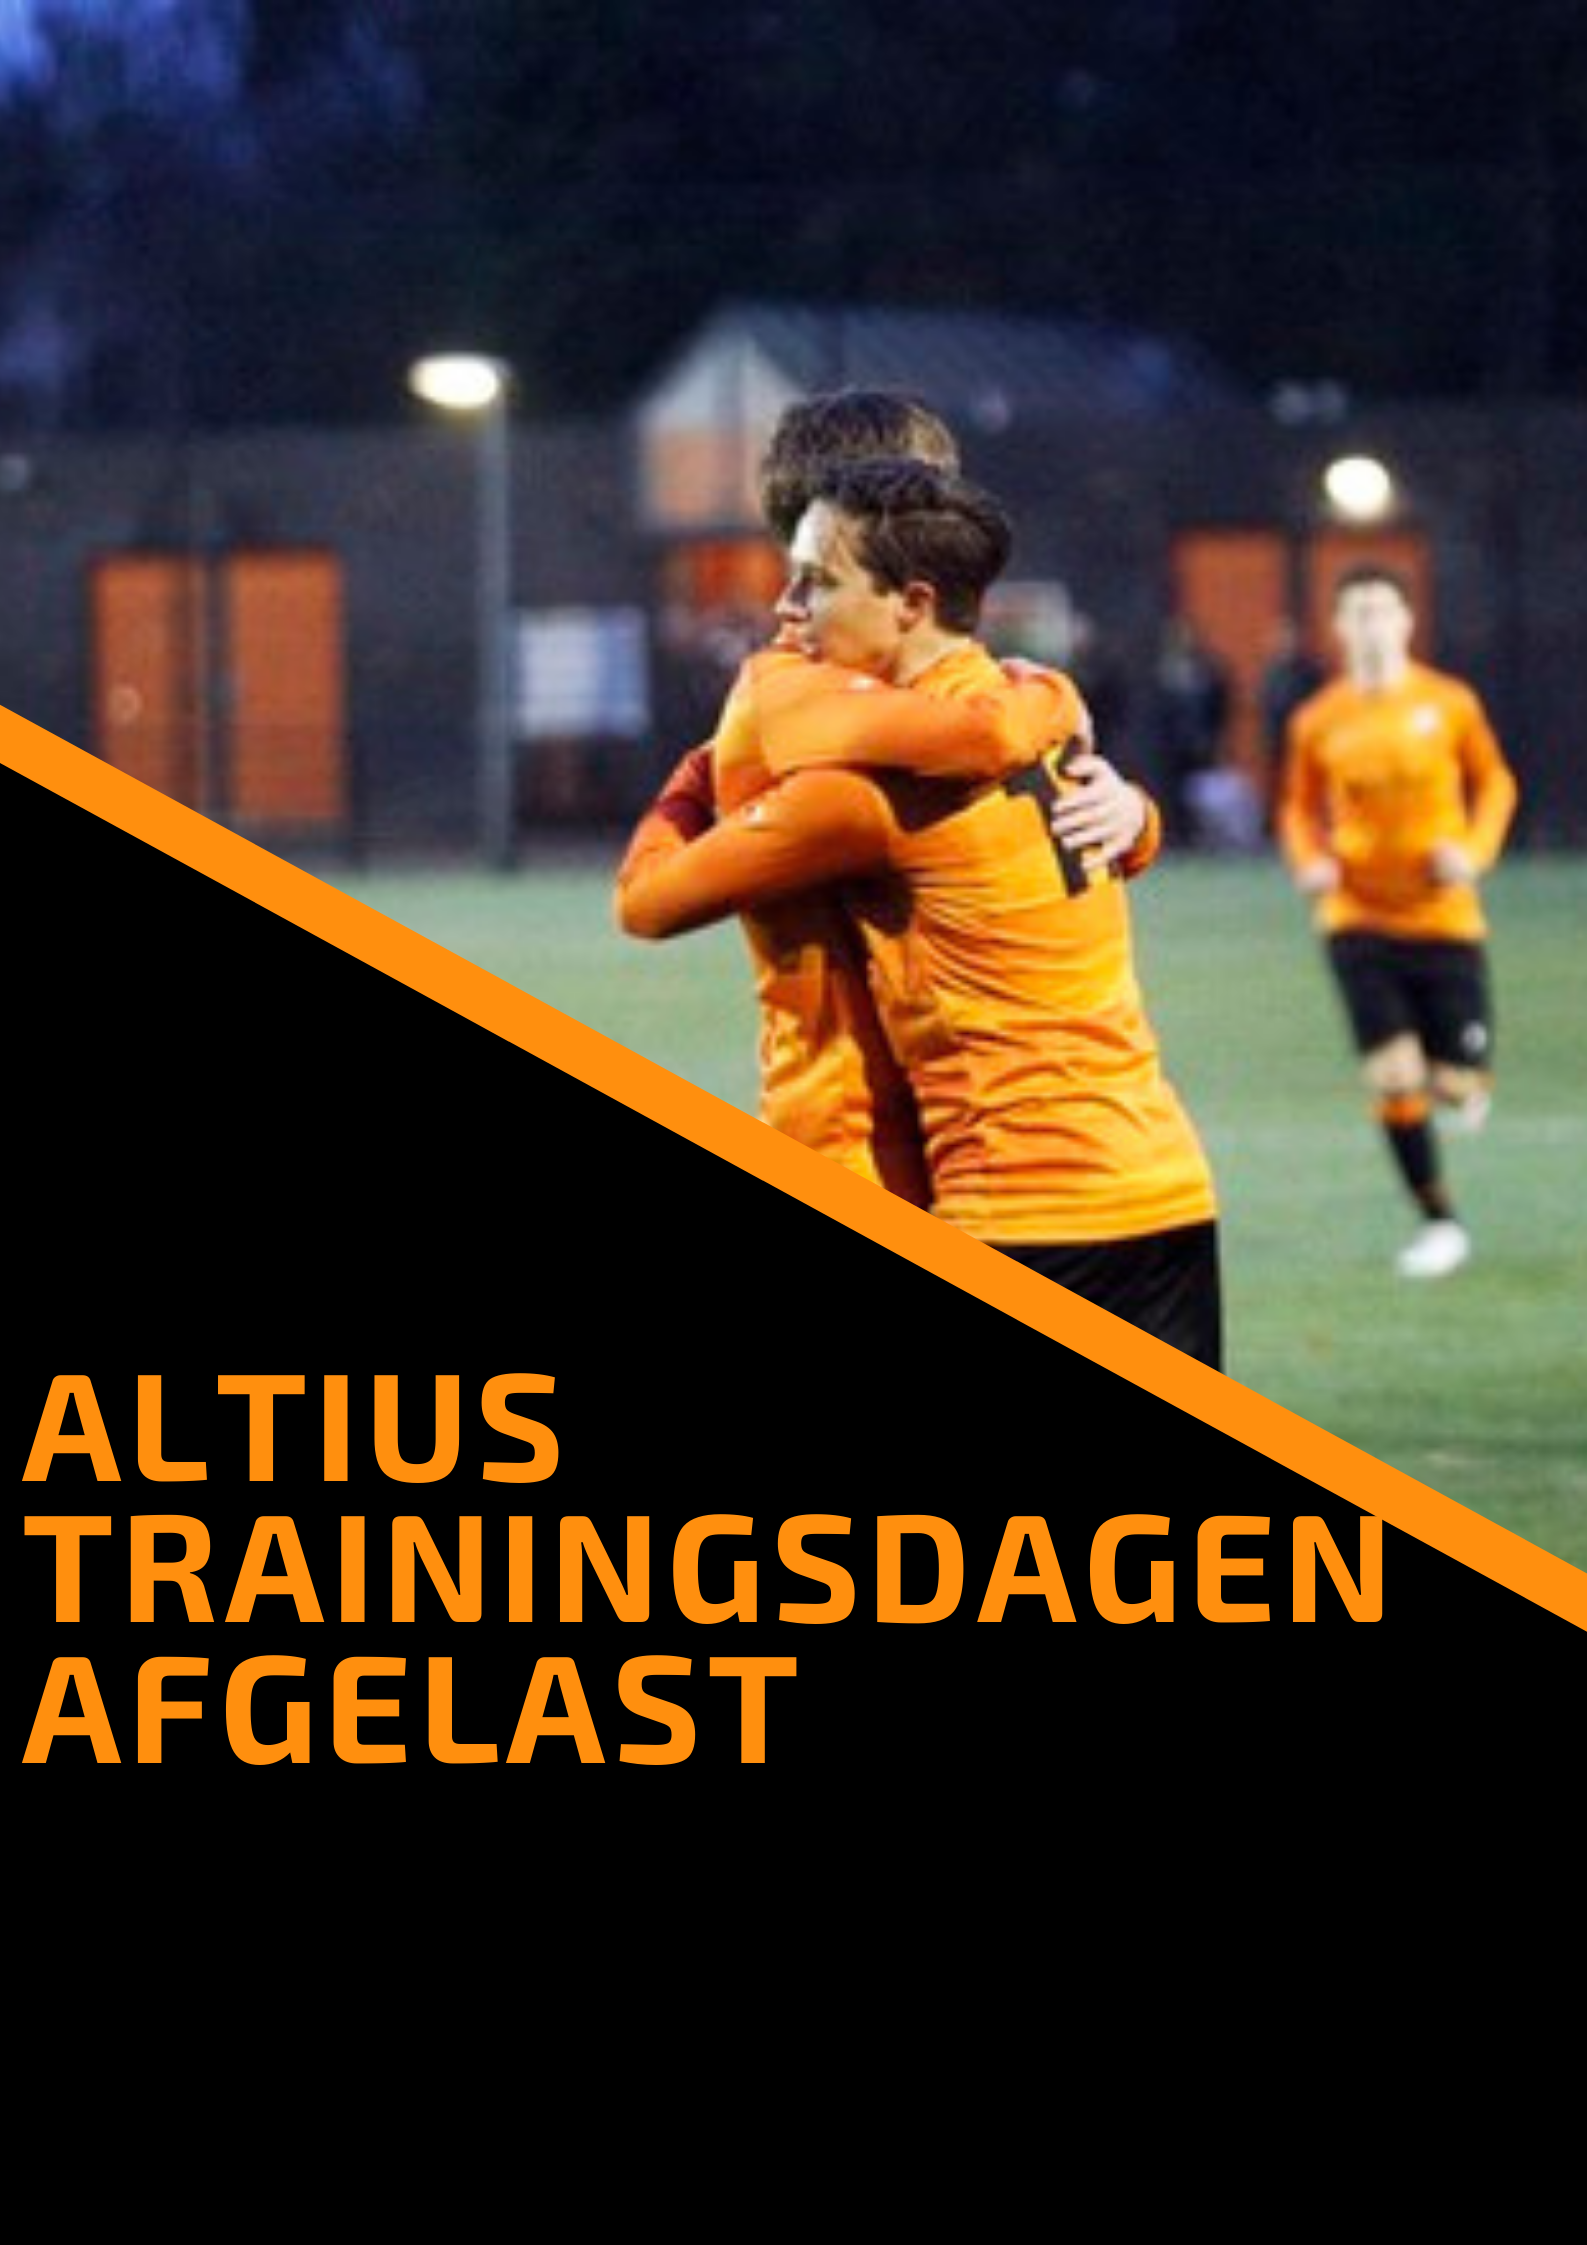 Trainingsdagen Altius - AFGELAST😢